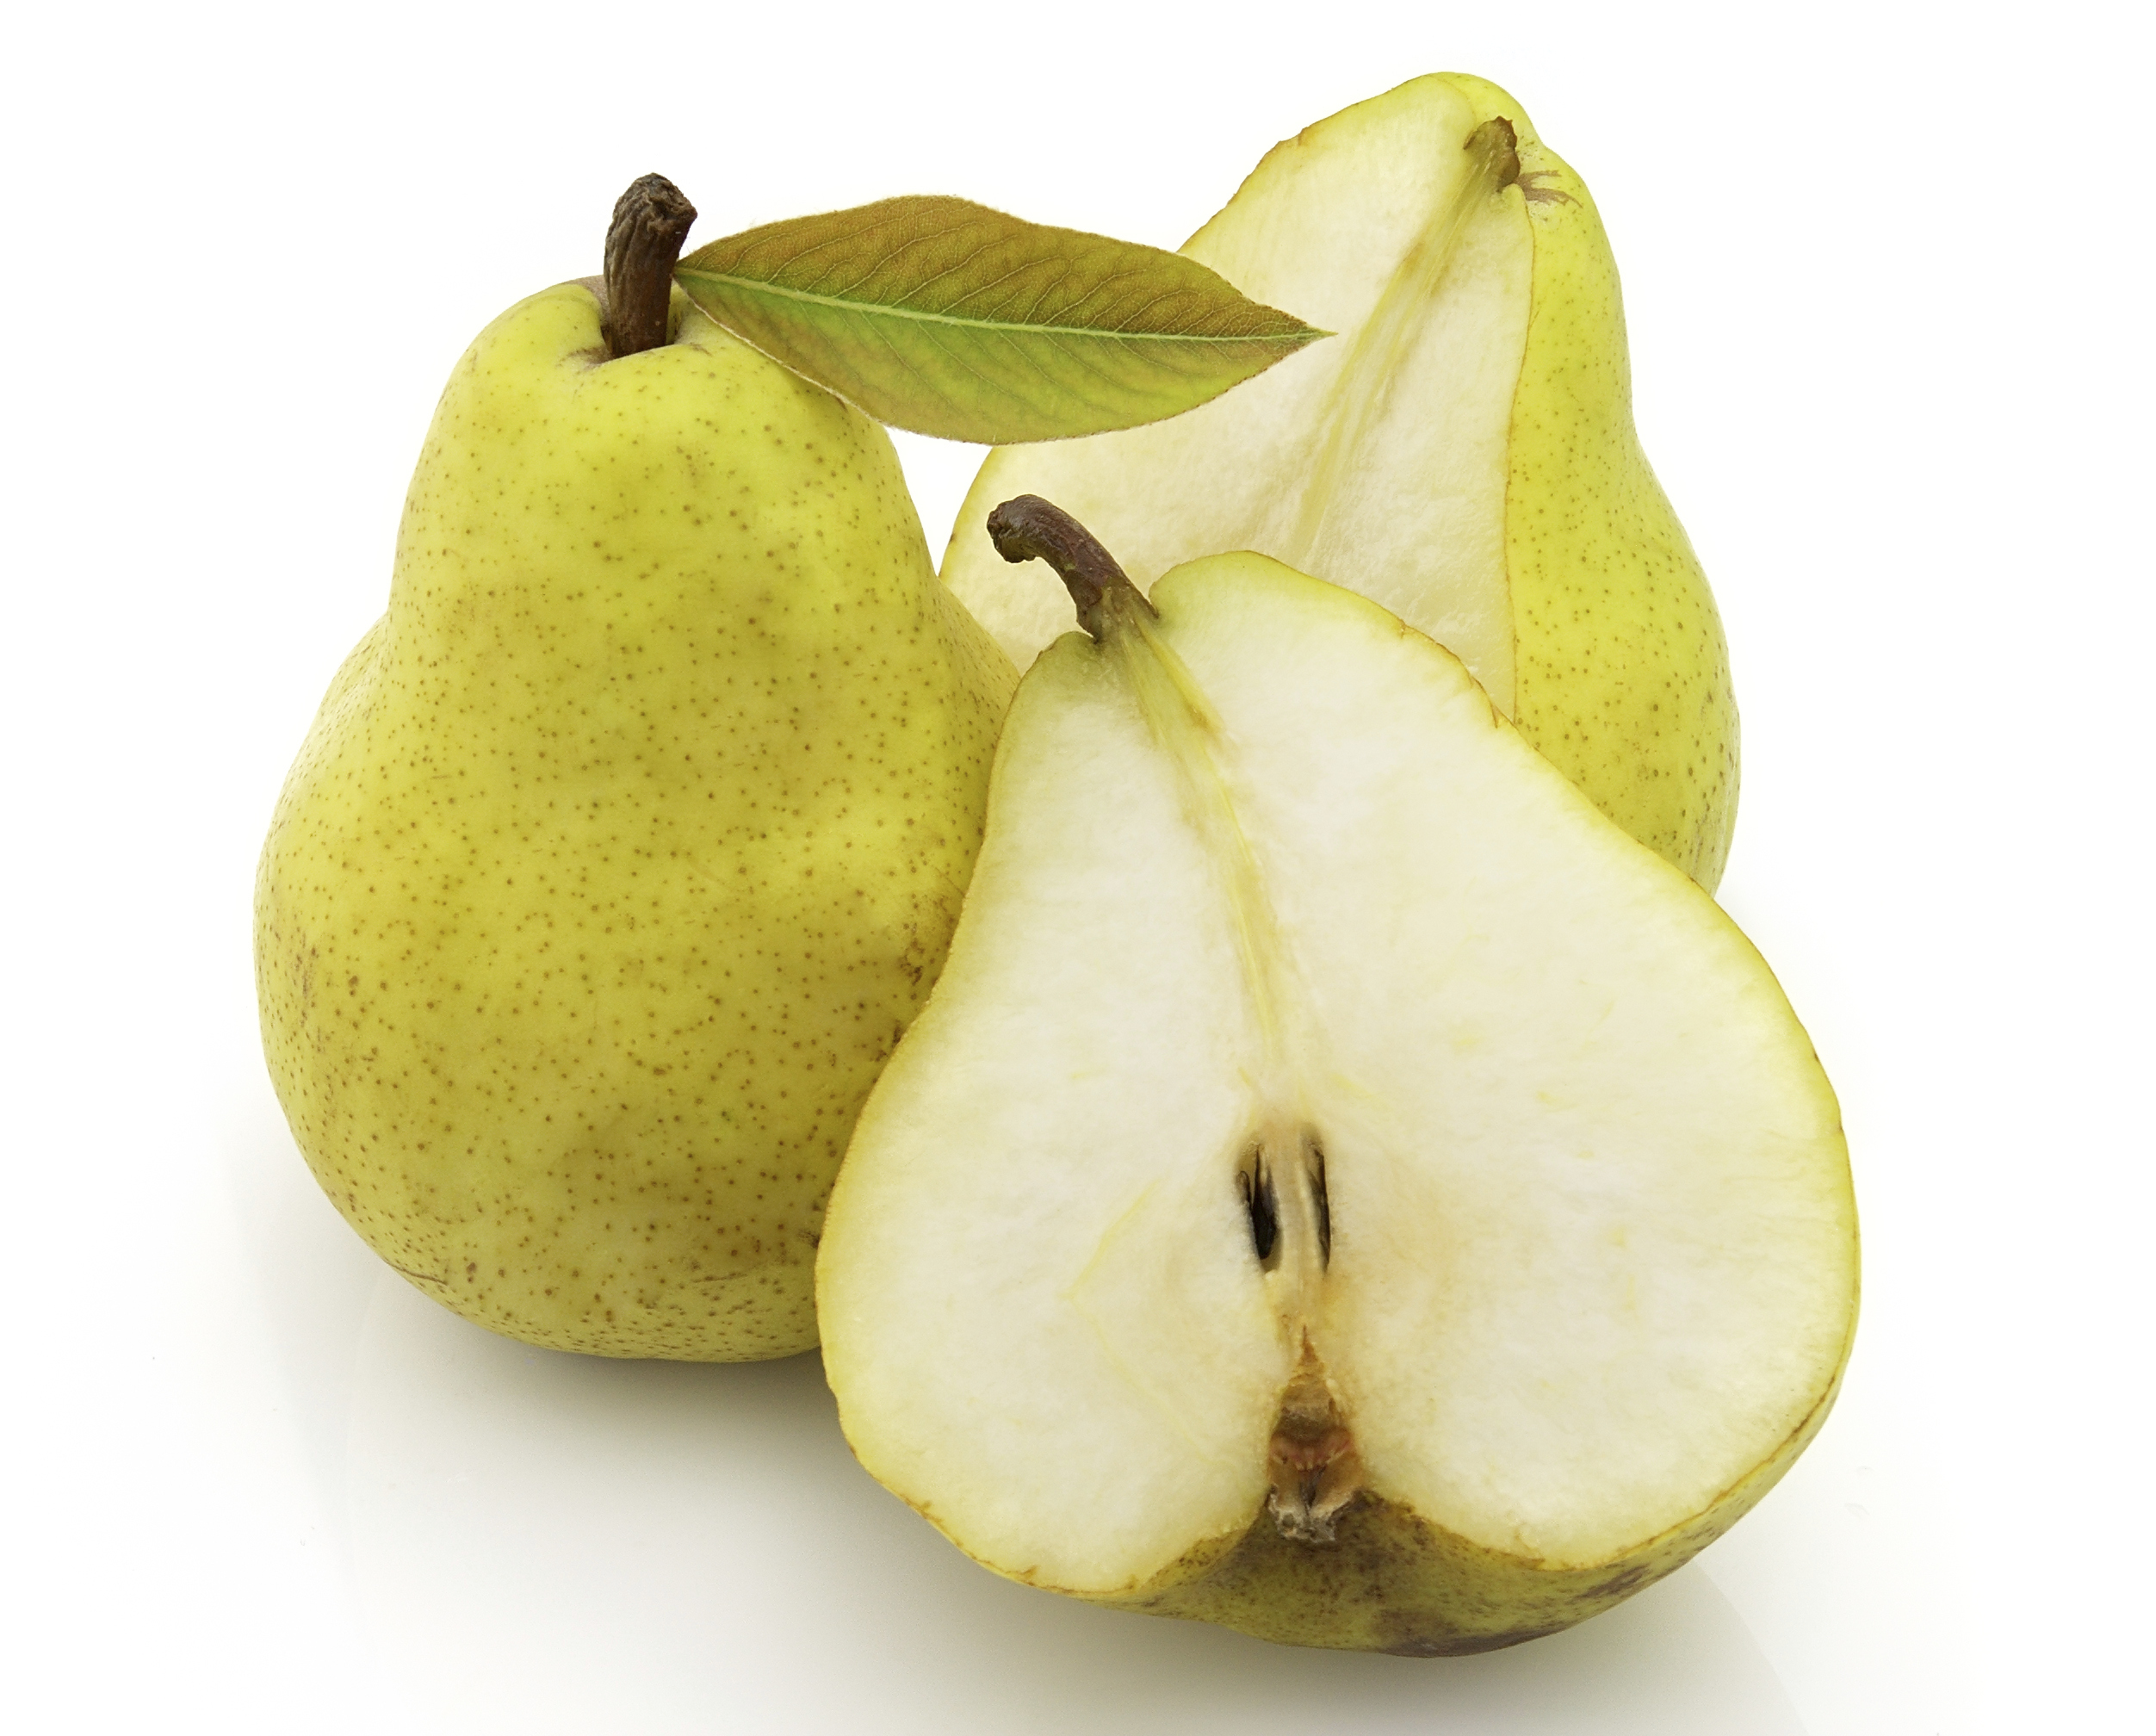 Cut Pear Fruits  345.57 Kb